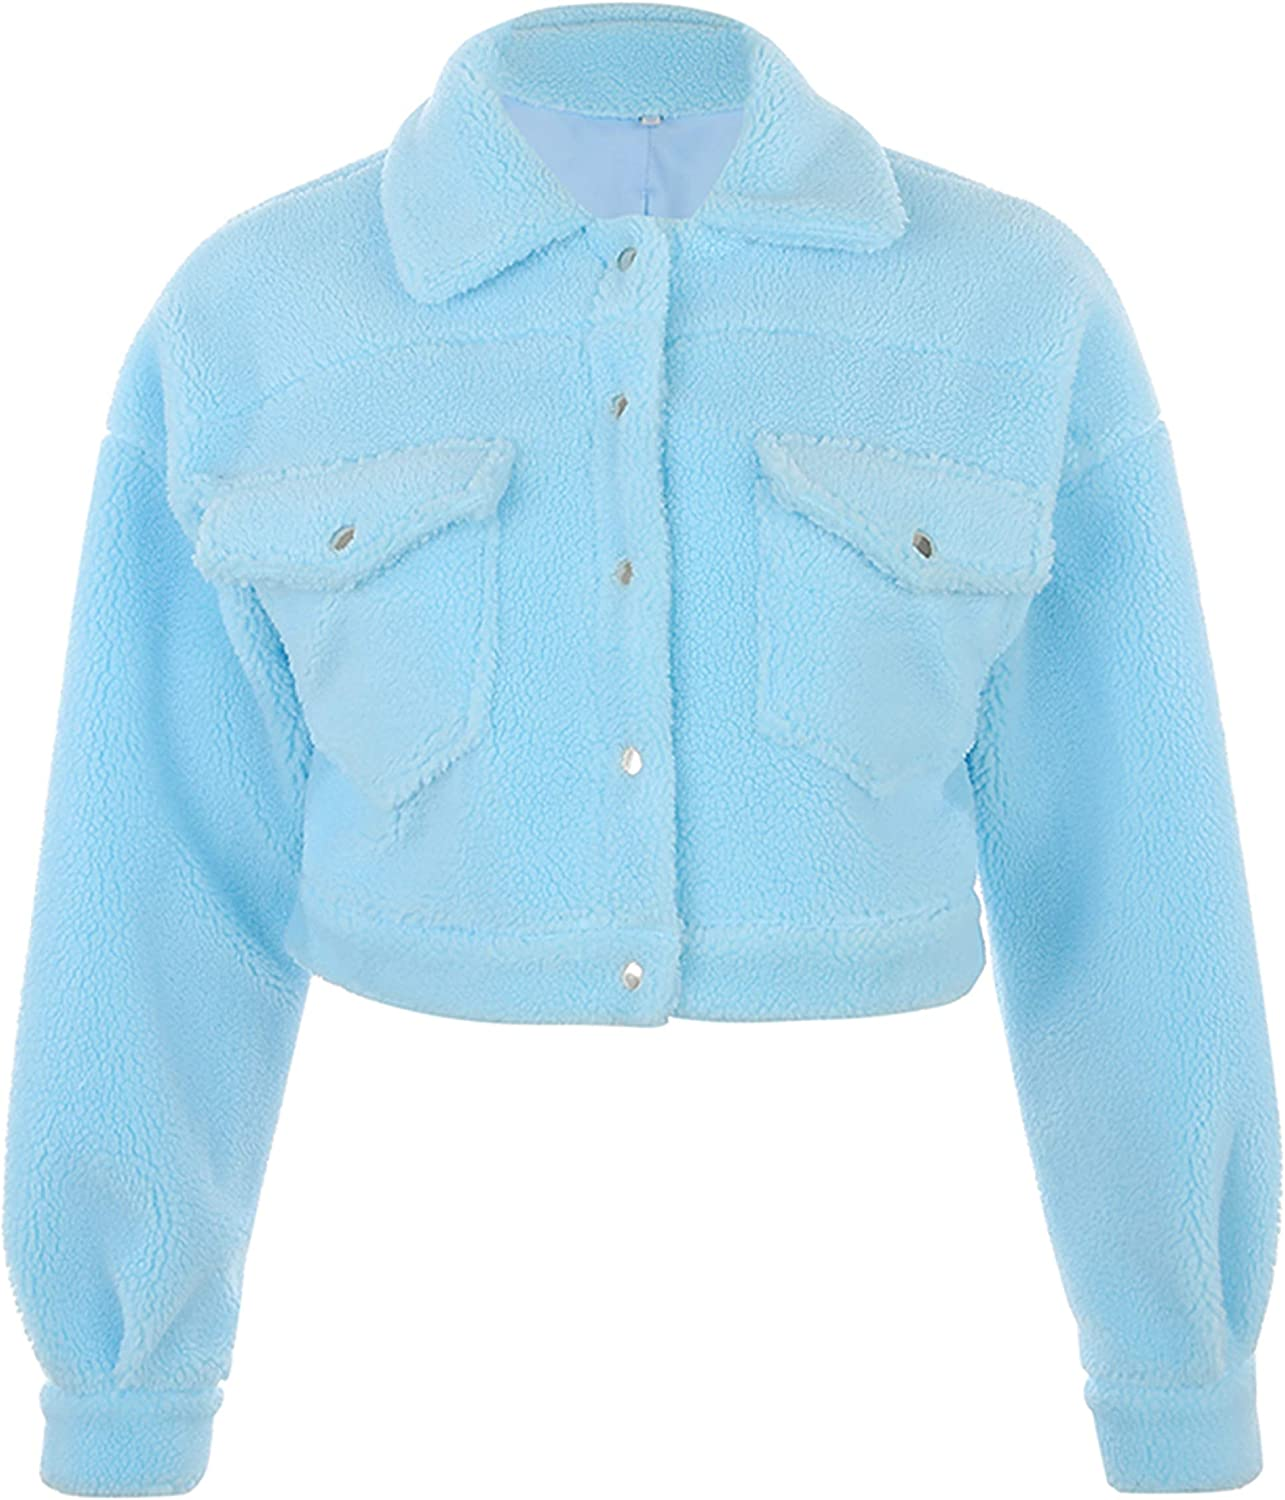 Uaneo Womens Casual Sherpa Button Down Long Sleeve Cropped Trucker Jacket Coat(Blue-M)